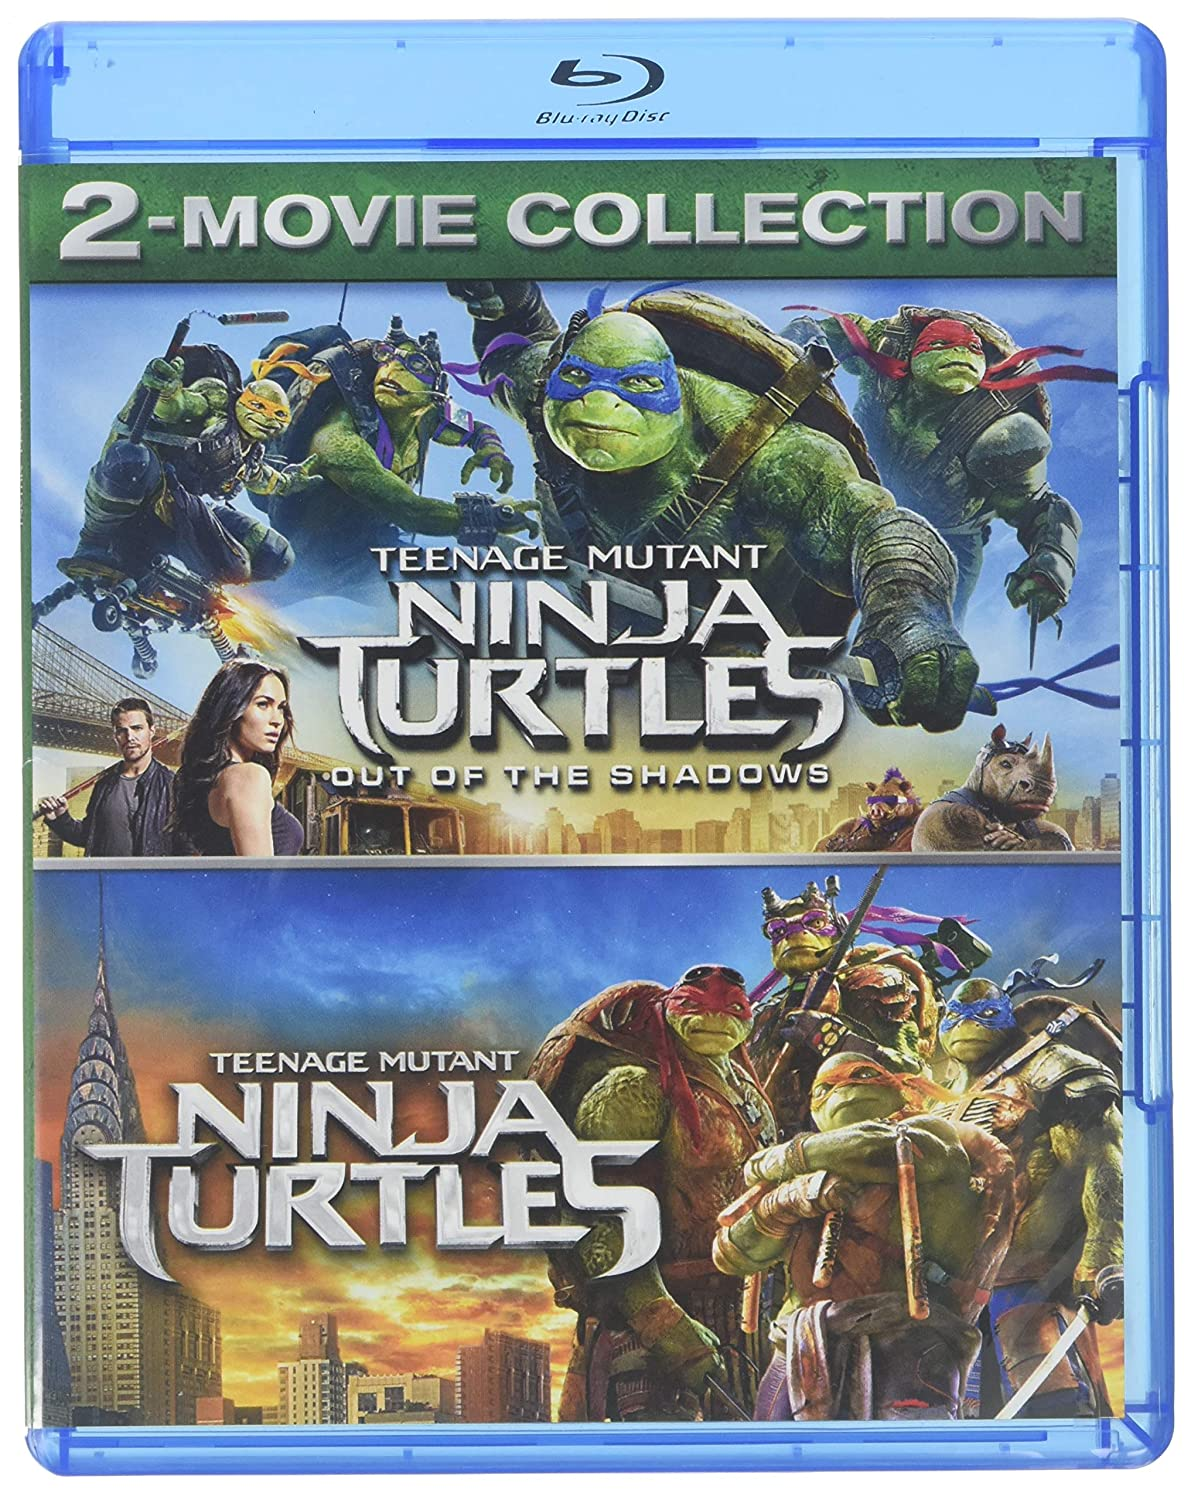 Amazon Com Teenage Mutant Ninja Turtles 2 Movie Collection Blu Ray Movies Tv